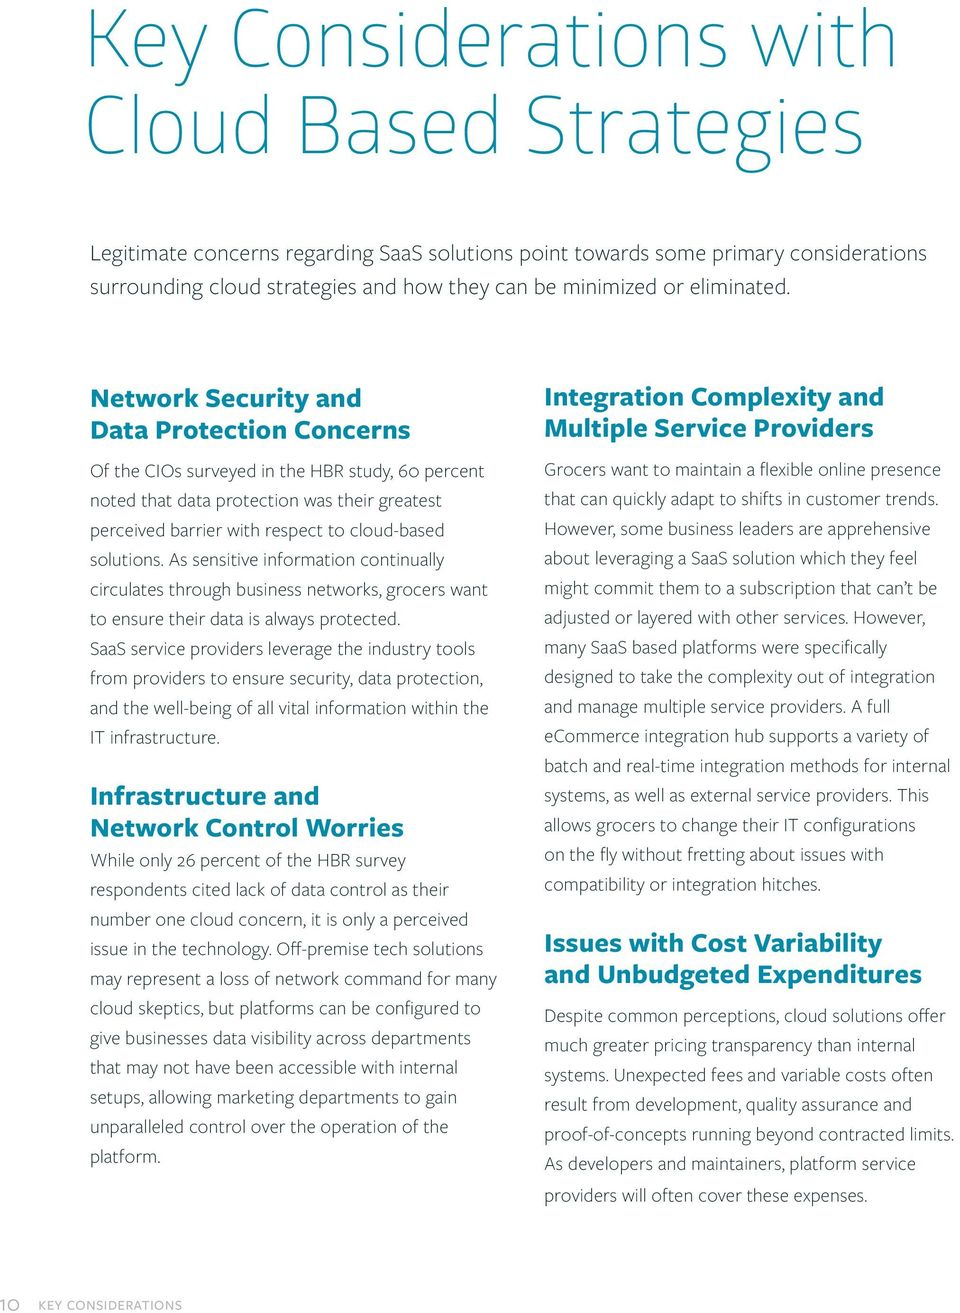 Network Security and Data Protection Concerns Of the CIOs surveyed in the HBR study, 60 percent noted that data protection was their greatest perceived barrier with respect to cloud-based solutions.